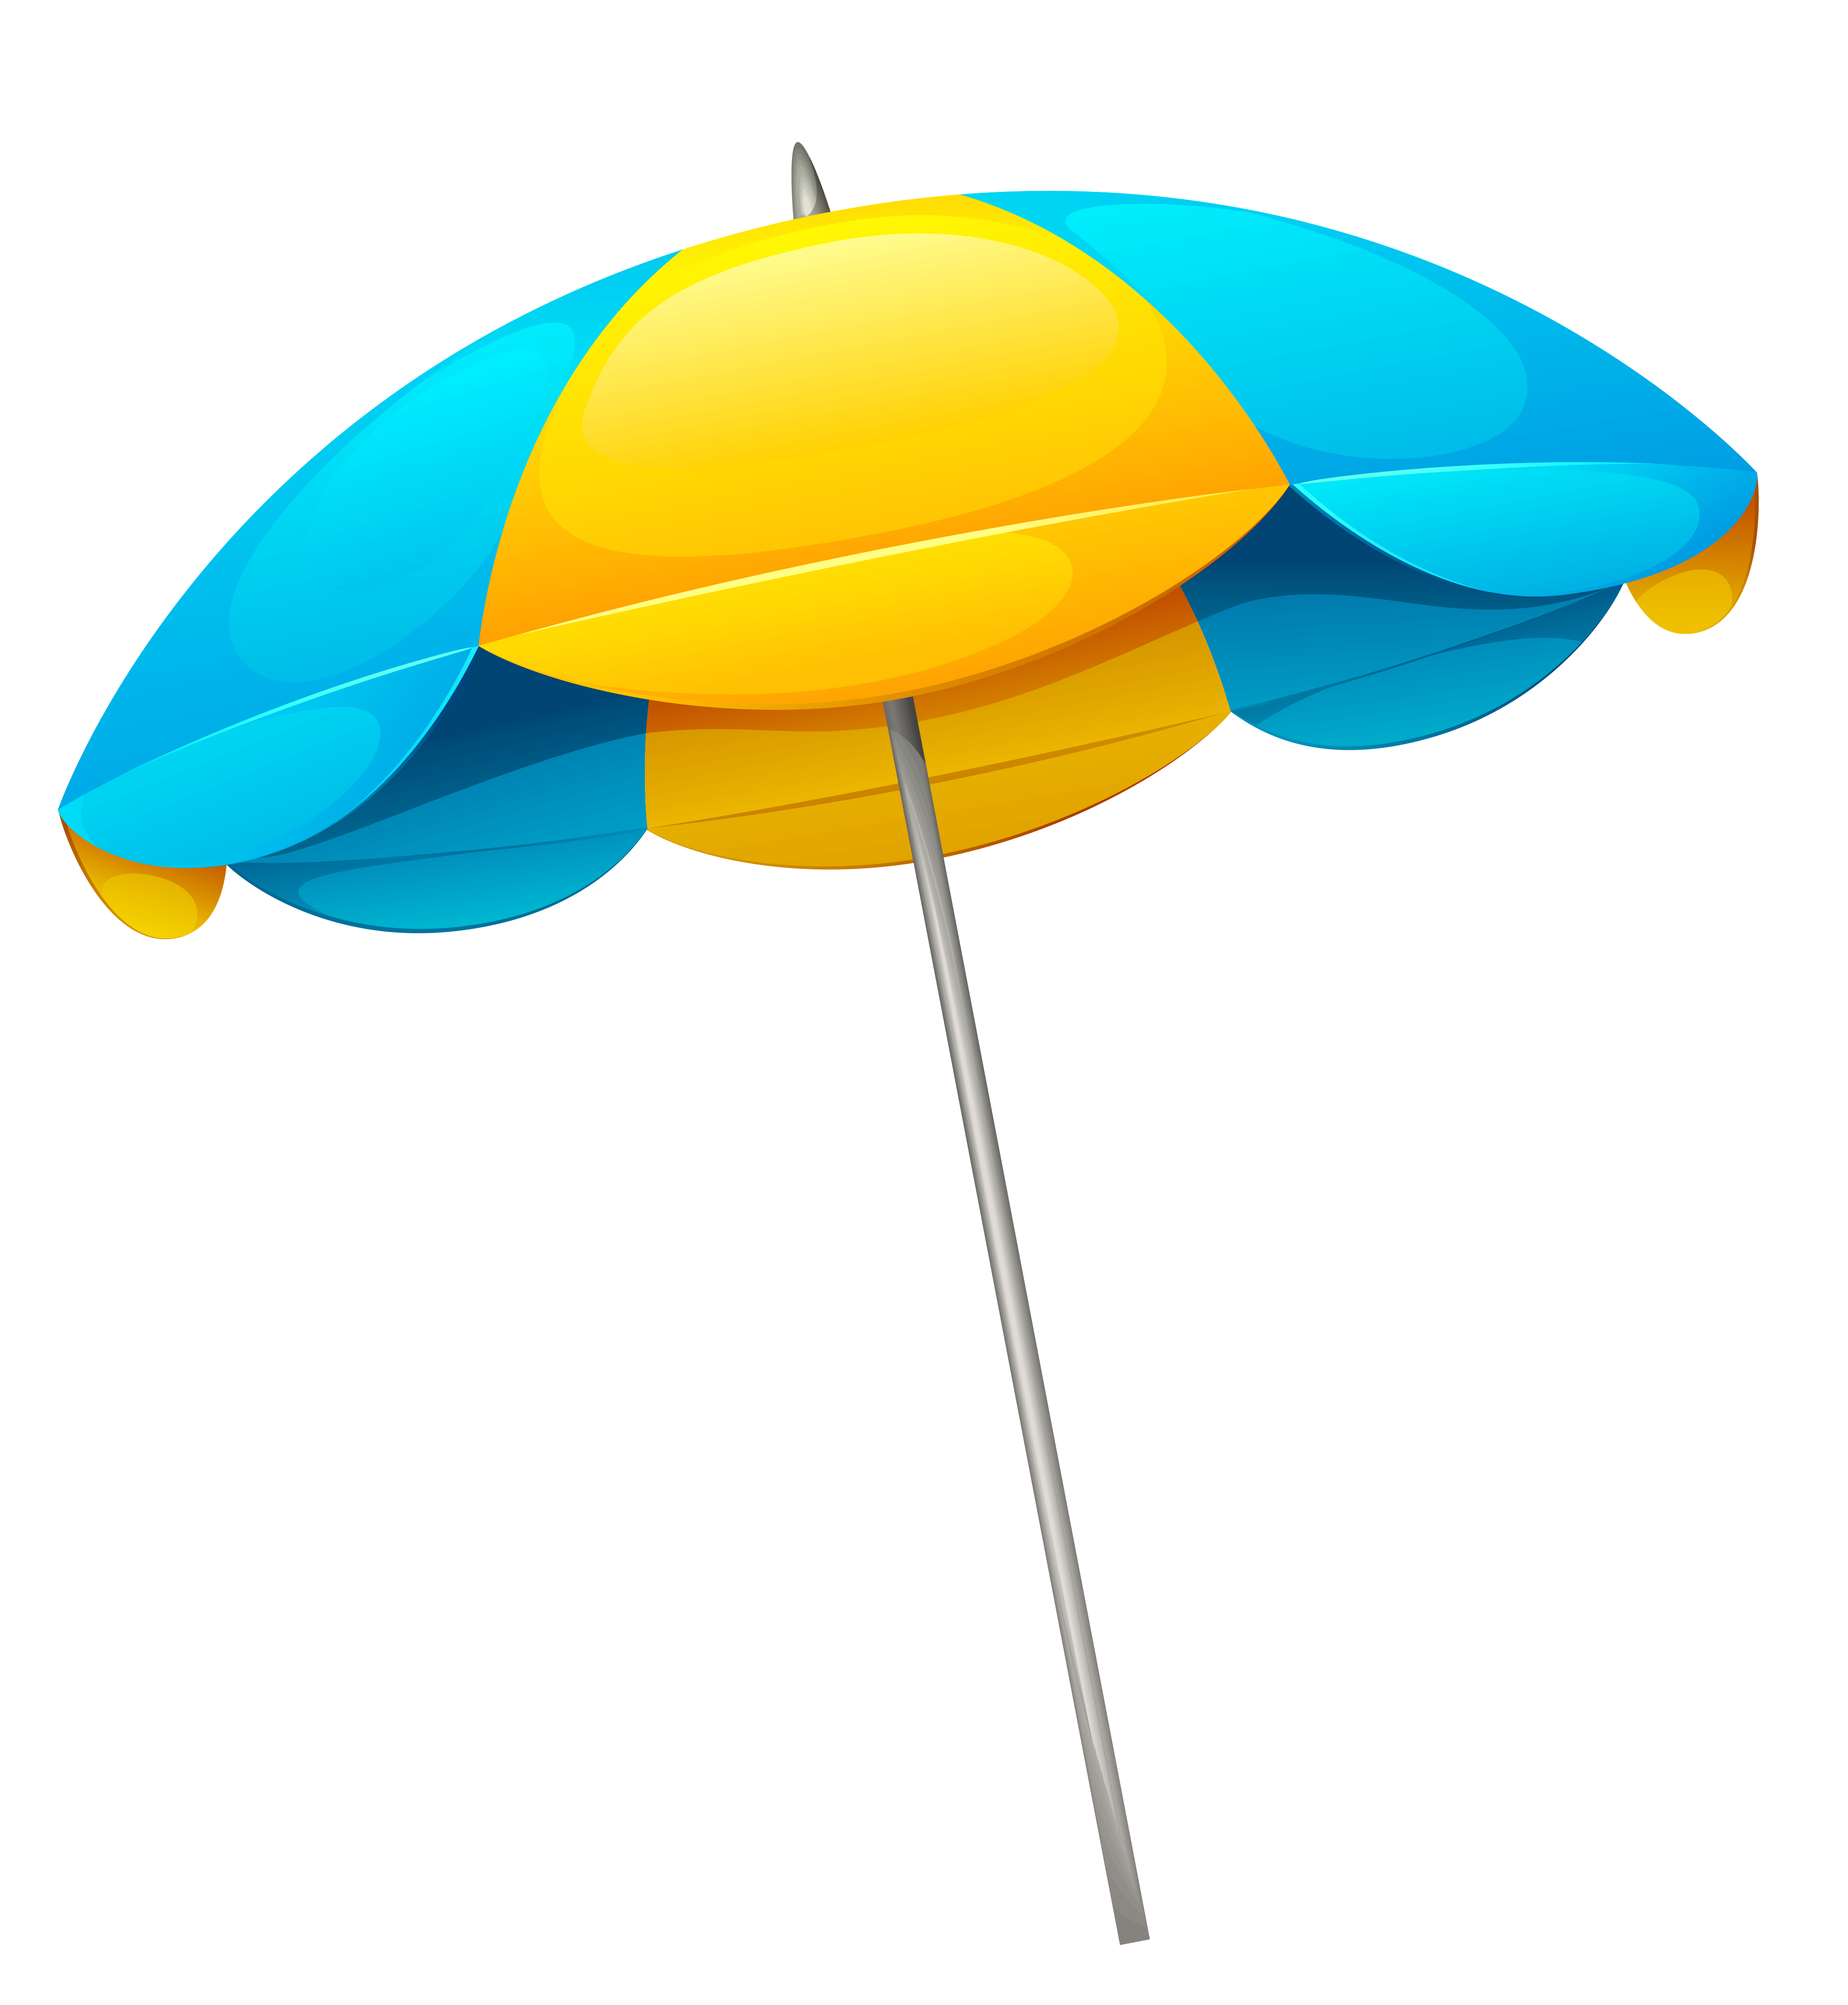 Beach png images. Yellow blue umbrella clipart